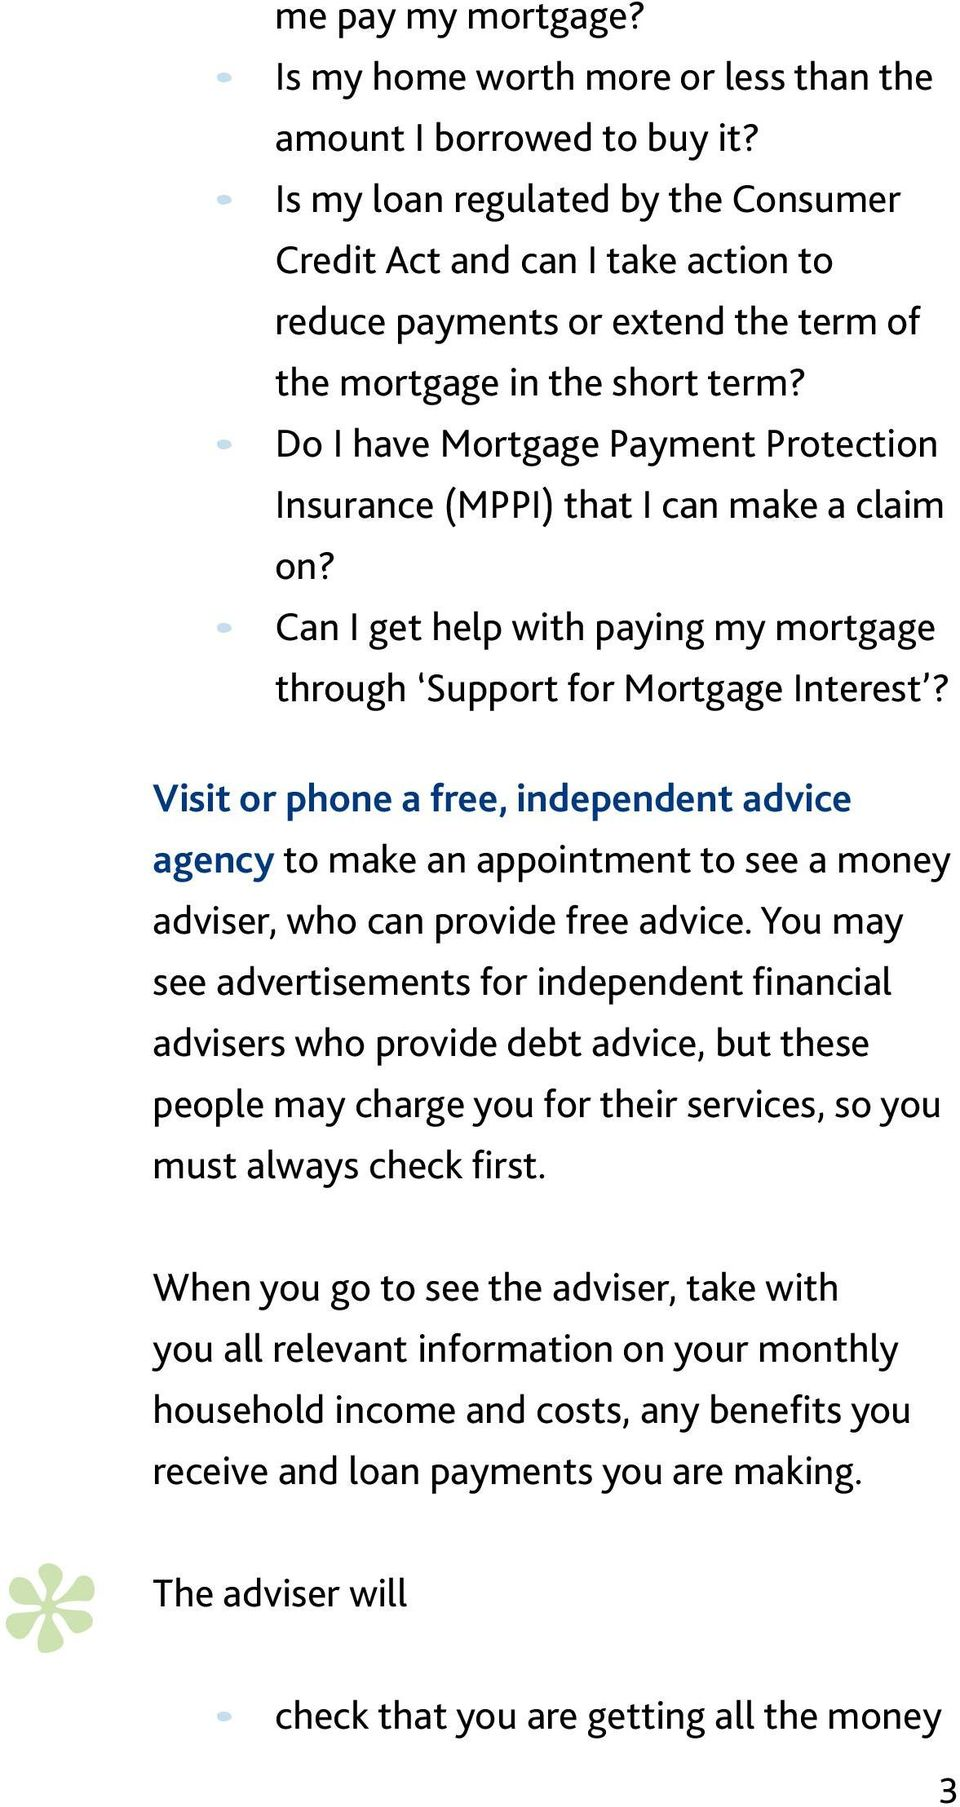 Do I have Mortgage Payment Protection Insurance (MPPI) that I can make a claim on? Can I get help with paying my mortgage through Support for Mortgage Interest?